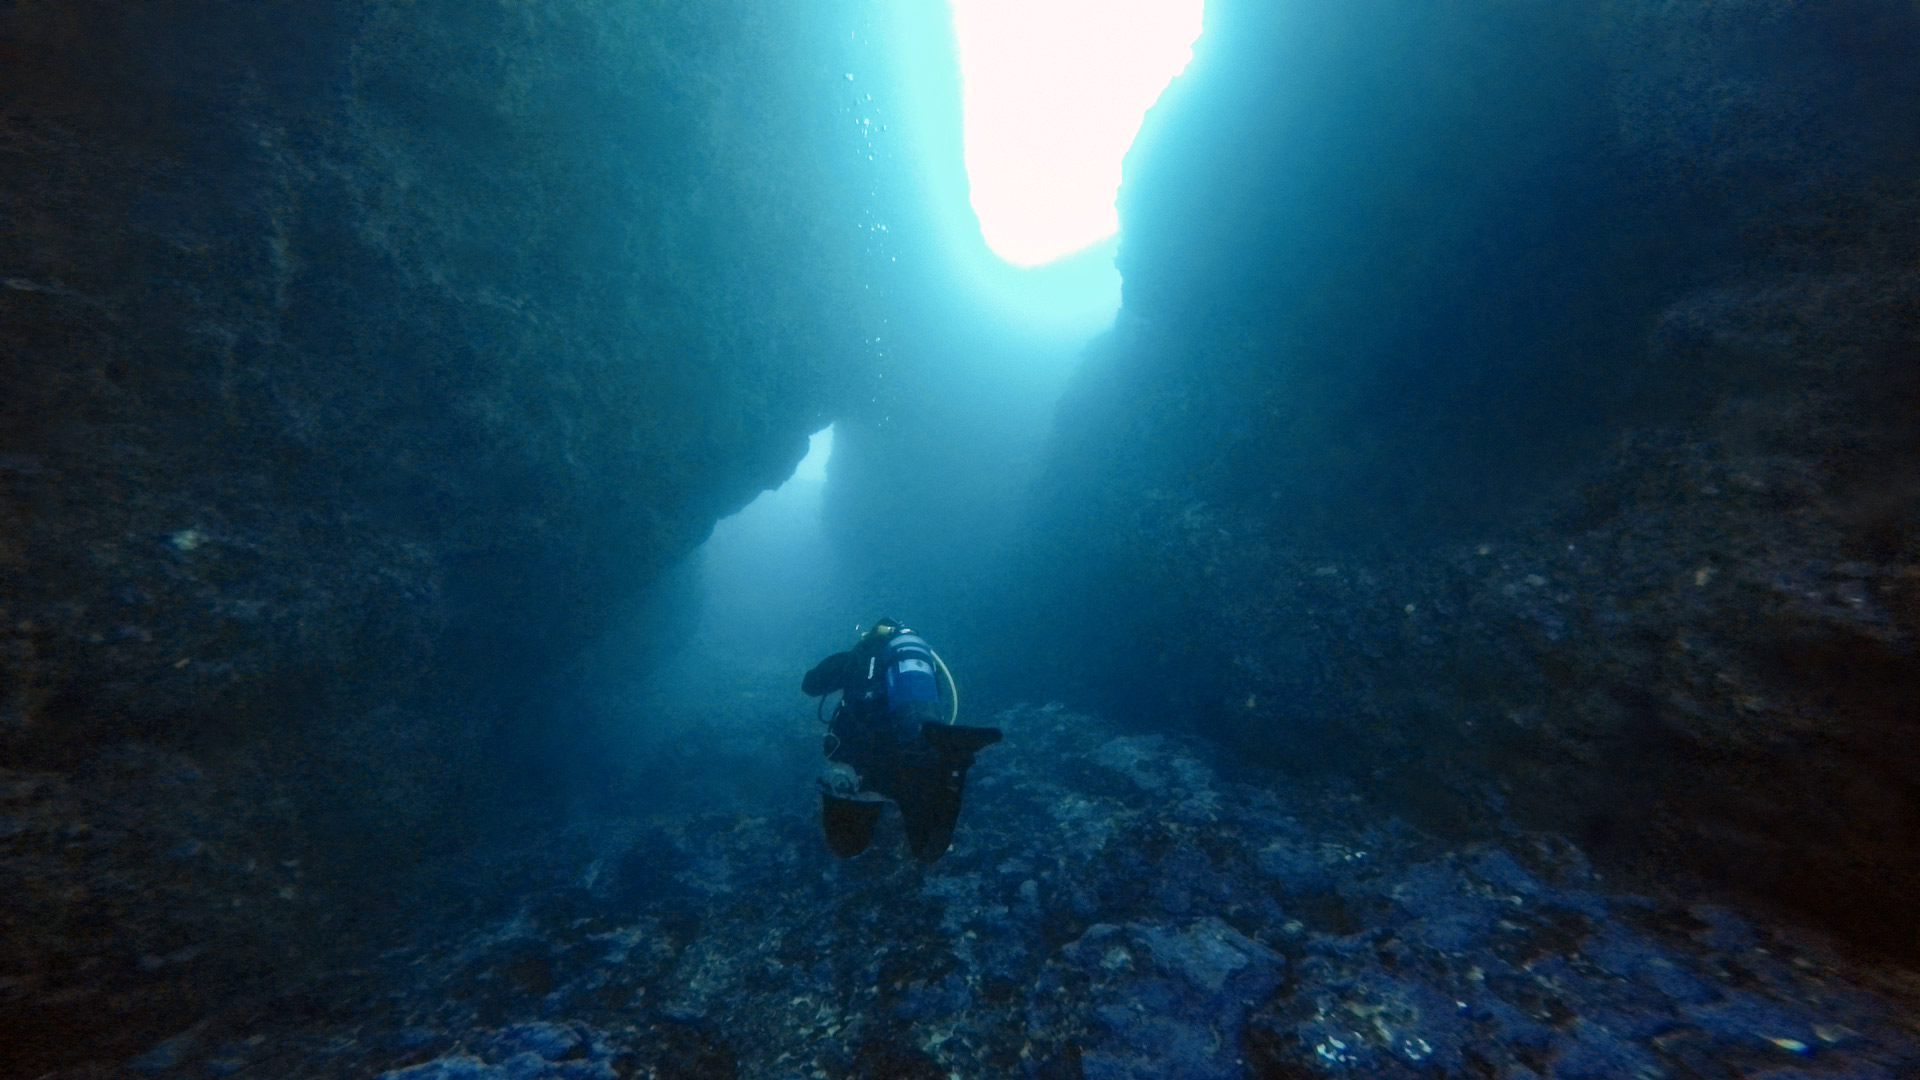 Diver entering the L'Ahrax Point tunnel from the inland sea